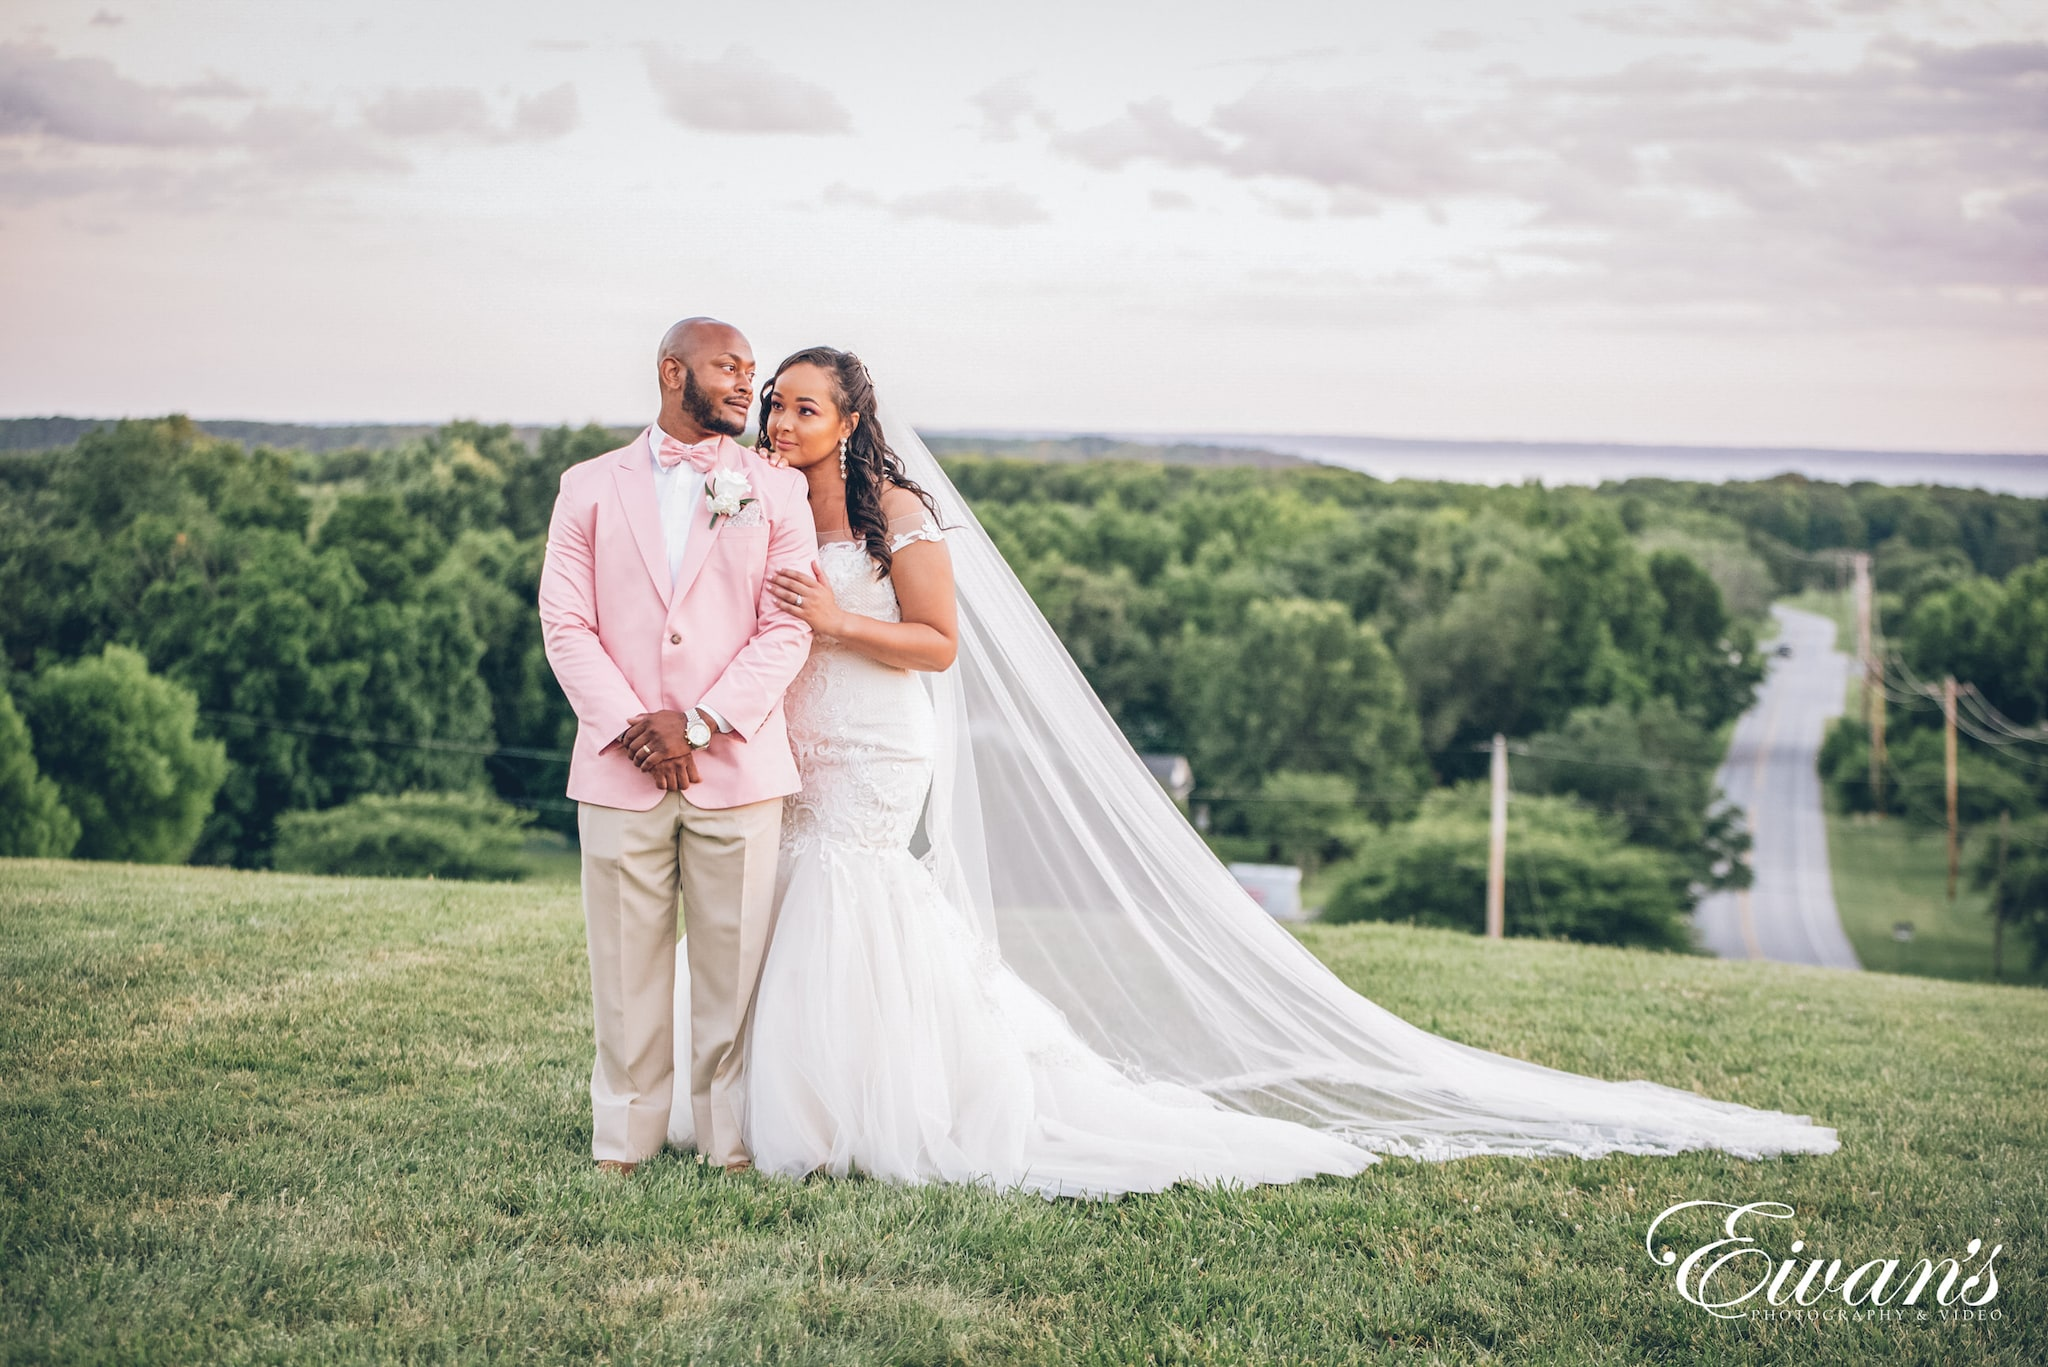 man in pink suit and woman in white dress